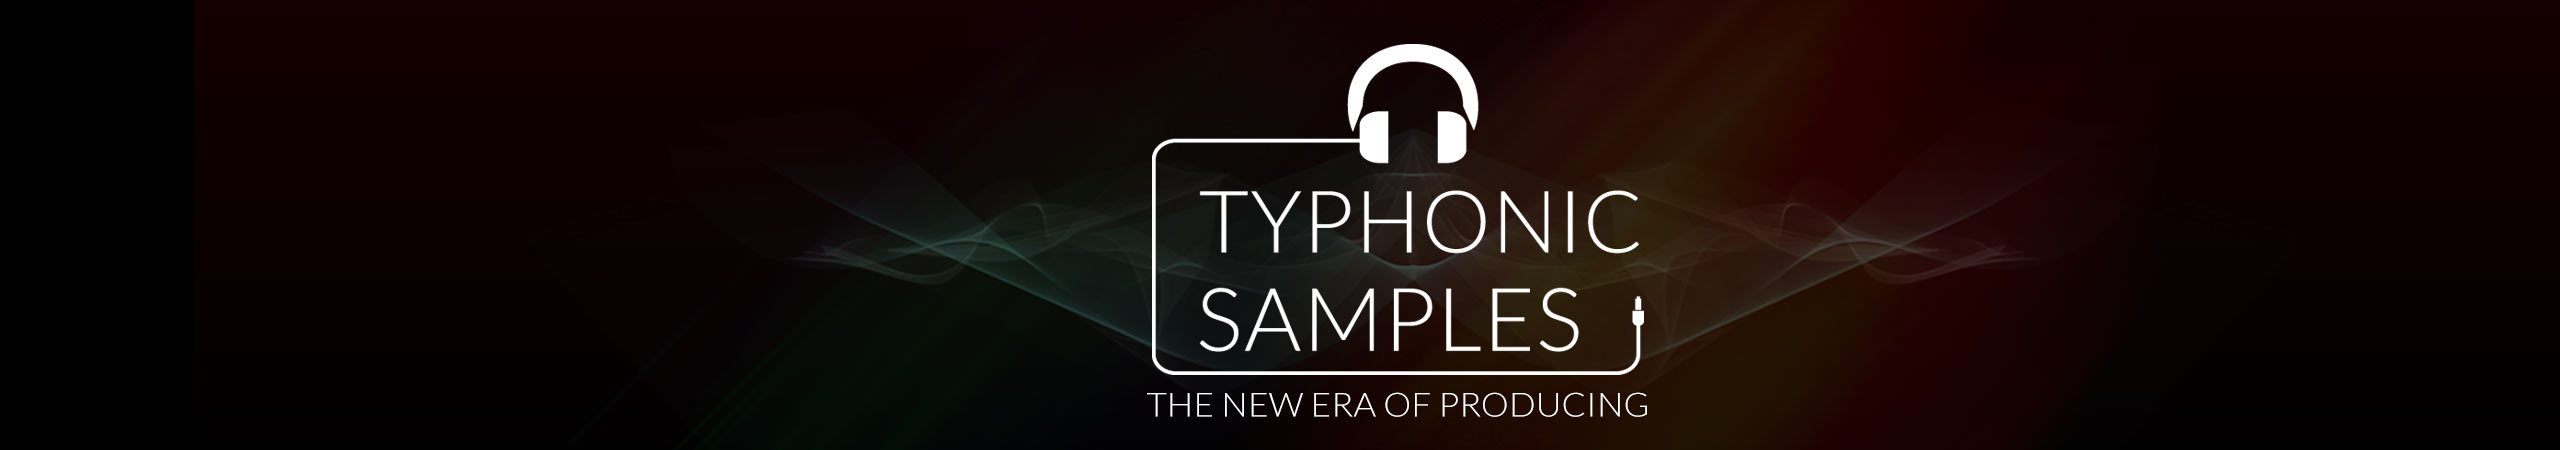 Typhonic Samples Banner Homepage Pay What You Want 1 Dollar Sound Bank Pack Preset FL Studio Serum